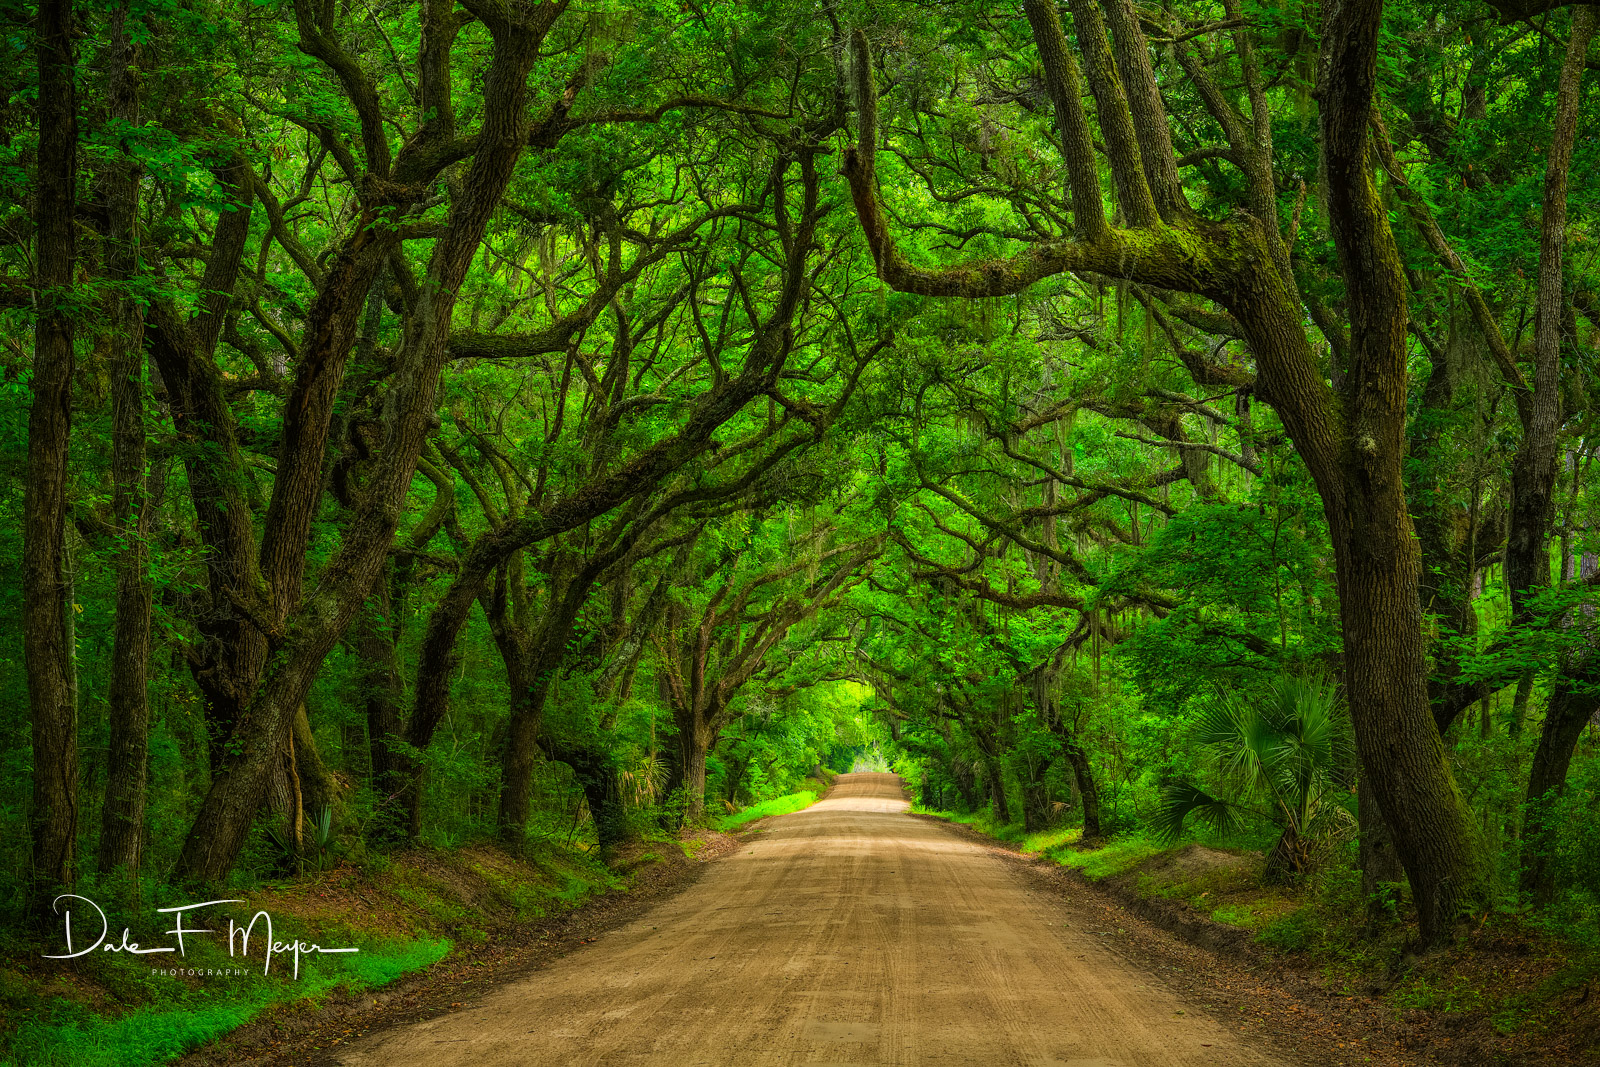 Deep South,Dirt Road,Edisto Island,Live Oaks,South Carolina,Summer 2013,woodlands and trees gallerie, photo